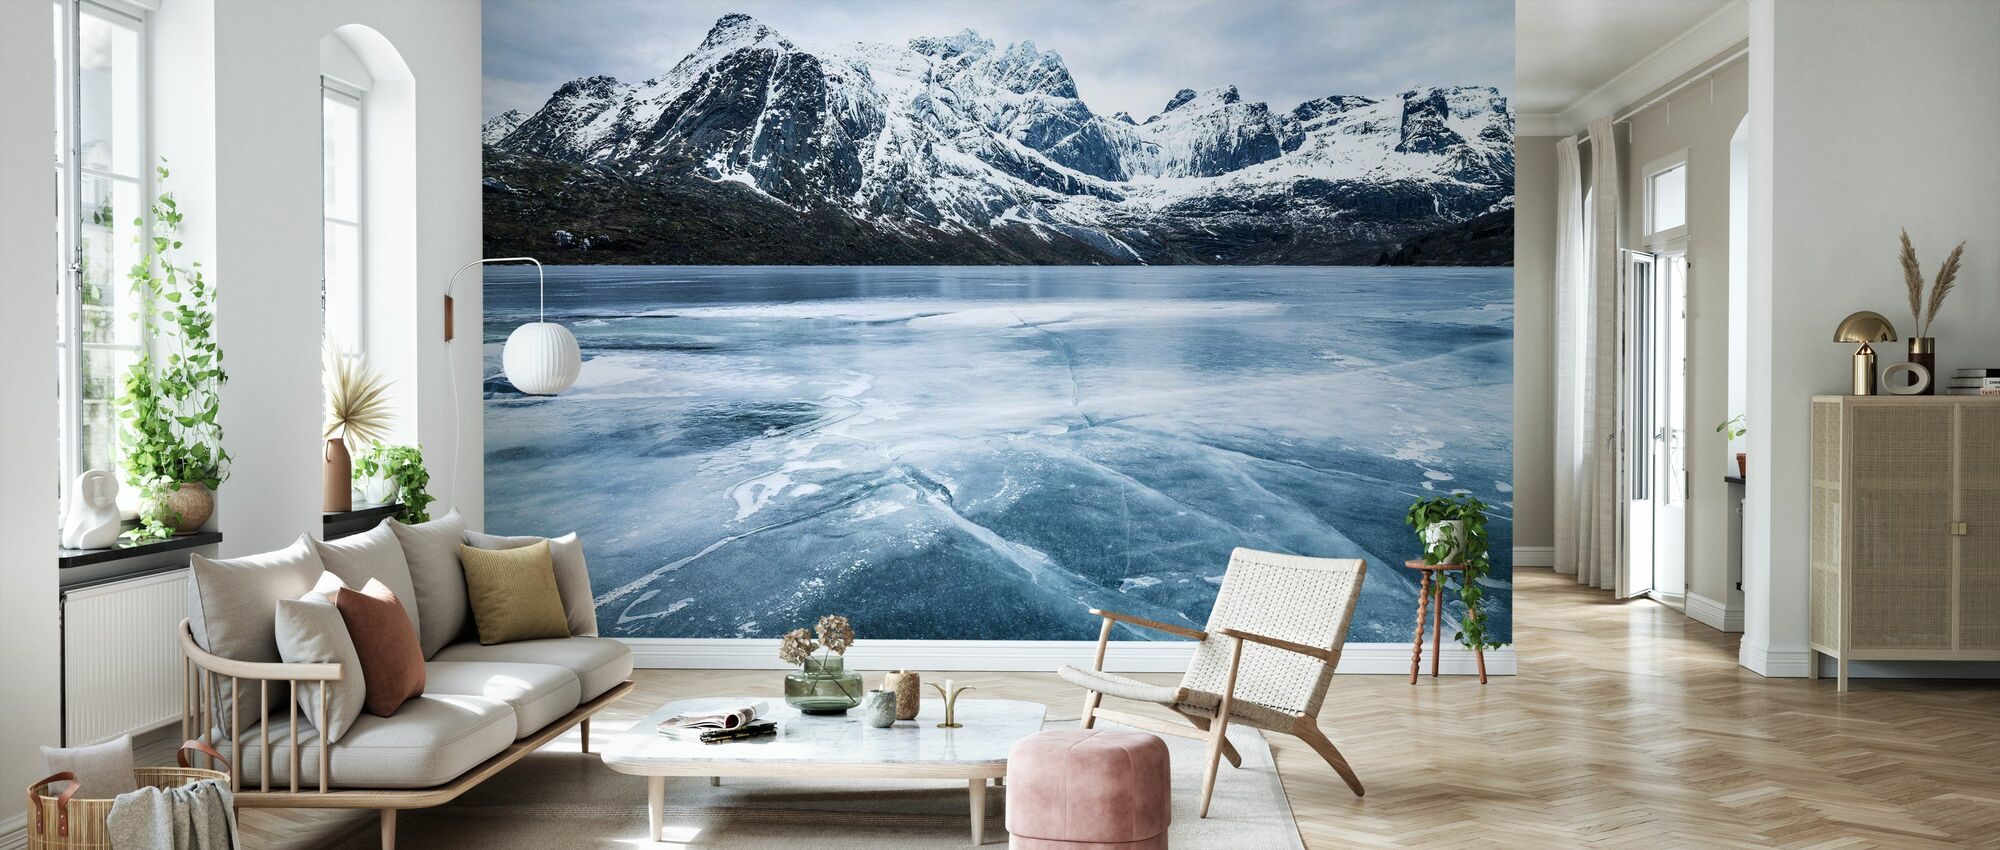 Frozen Water and Mountain Range - Wallpaper - Living Room